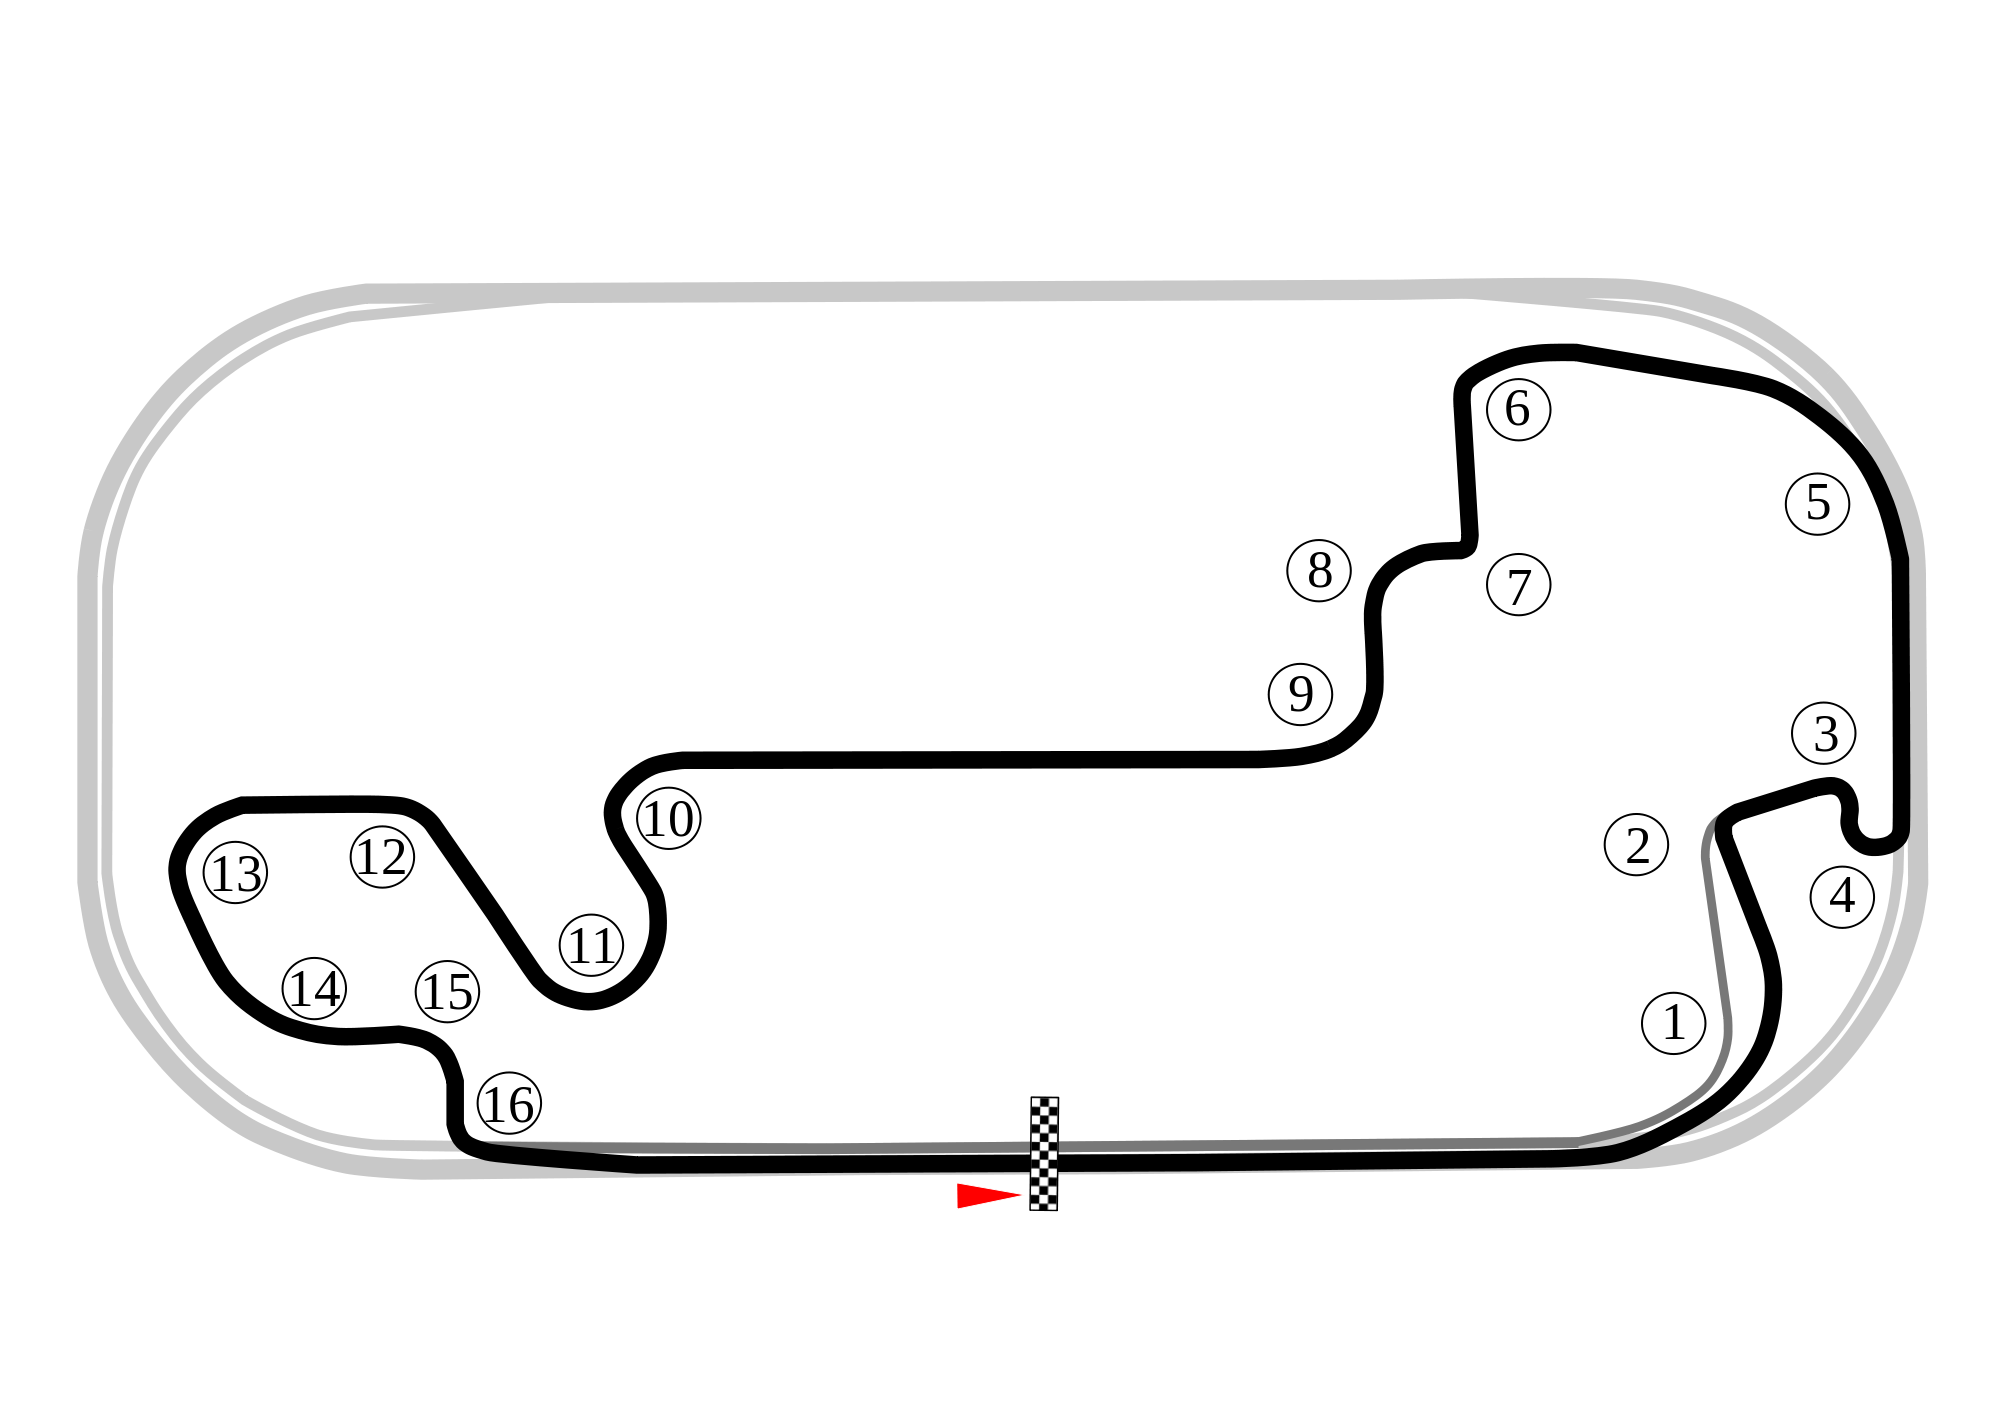 Pcars_Indianapolis_Motor_Speedway_Road_Course.png